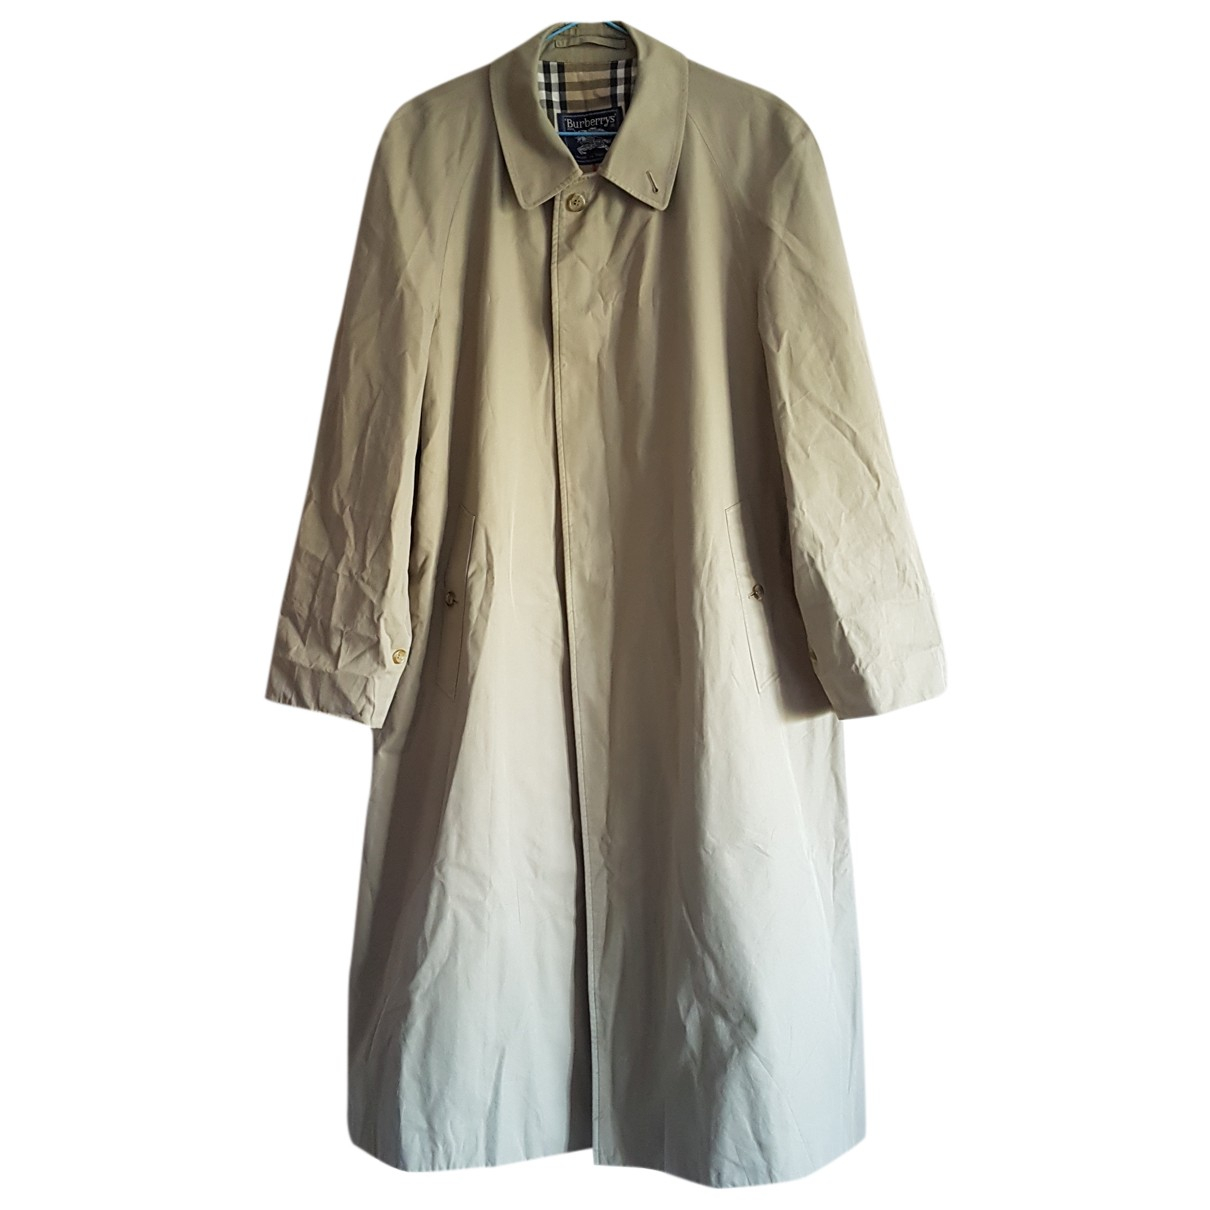 Burberry N Beige Cotton Trench coat for Women One Size International